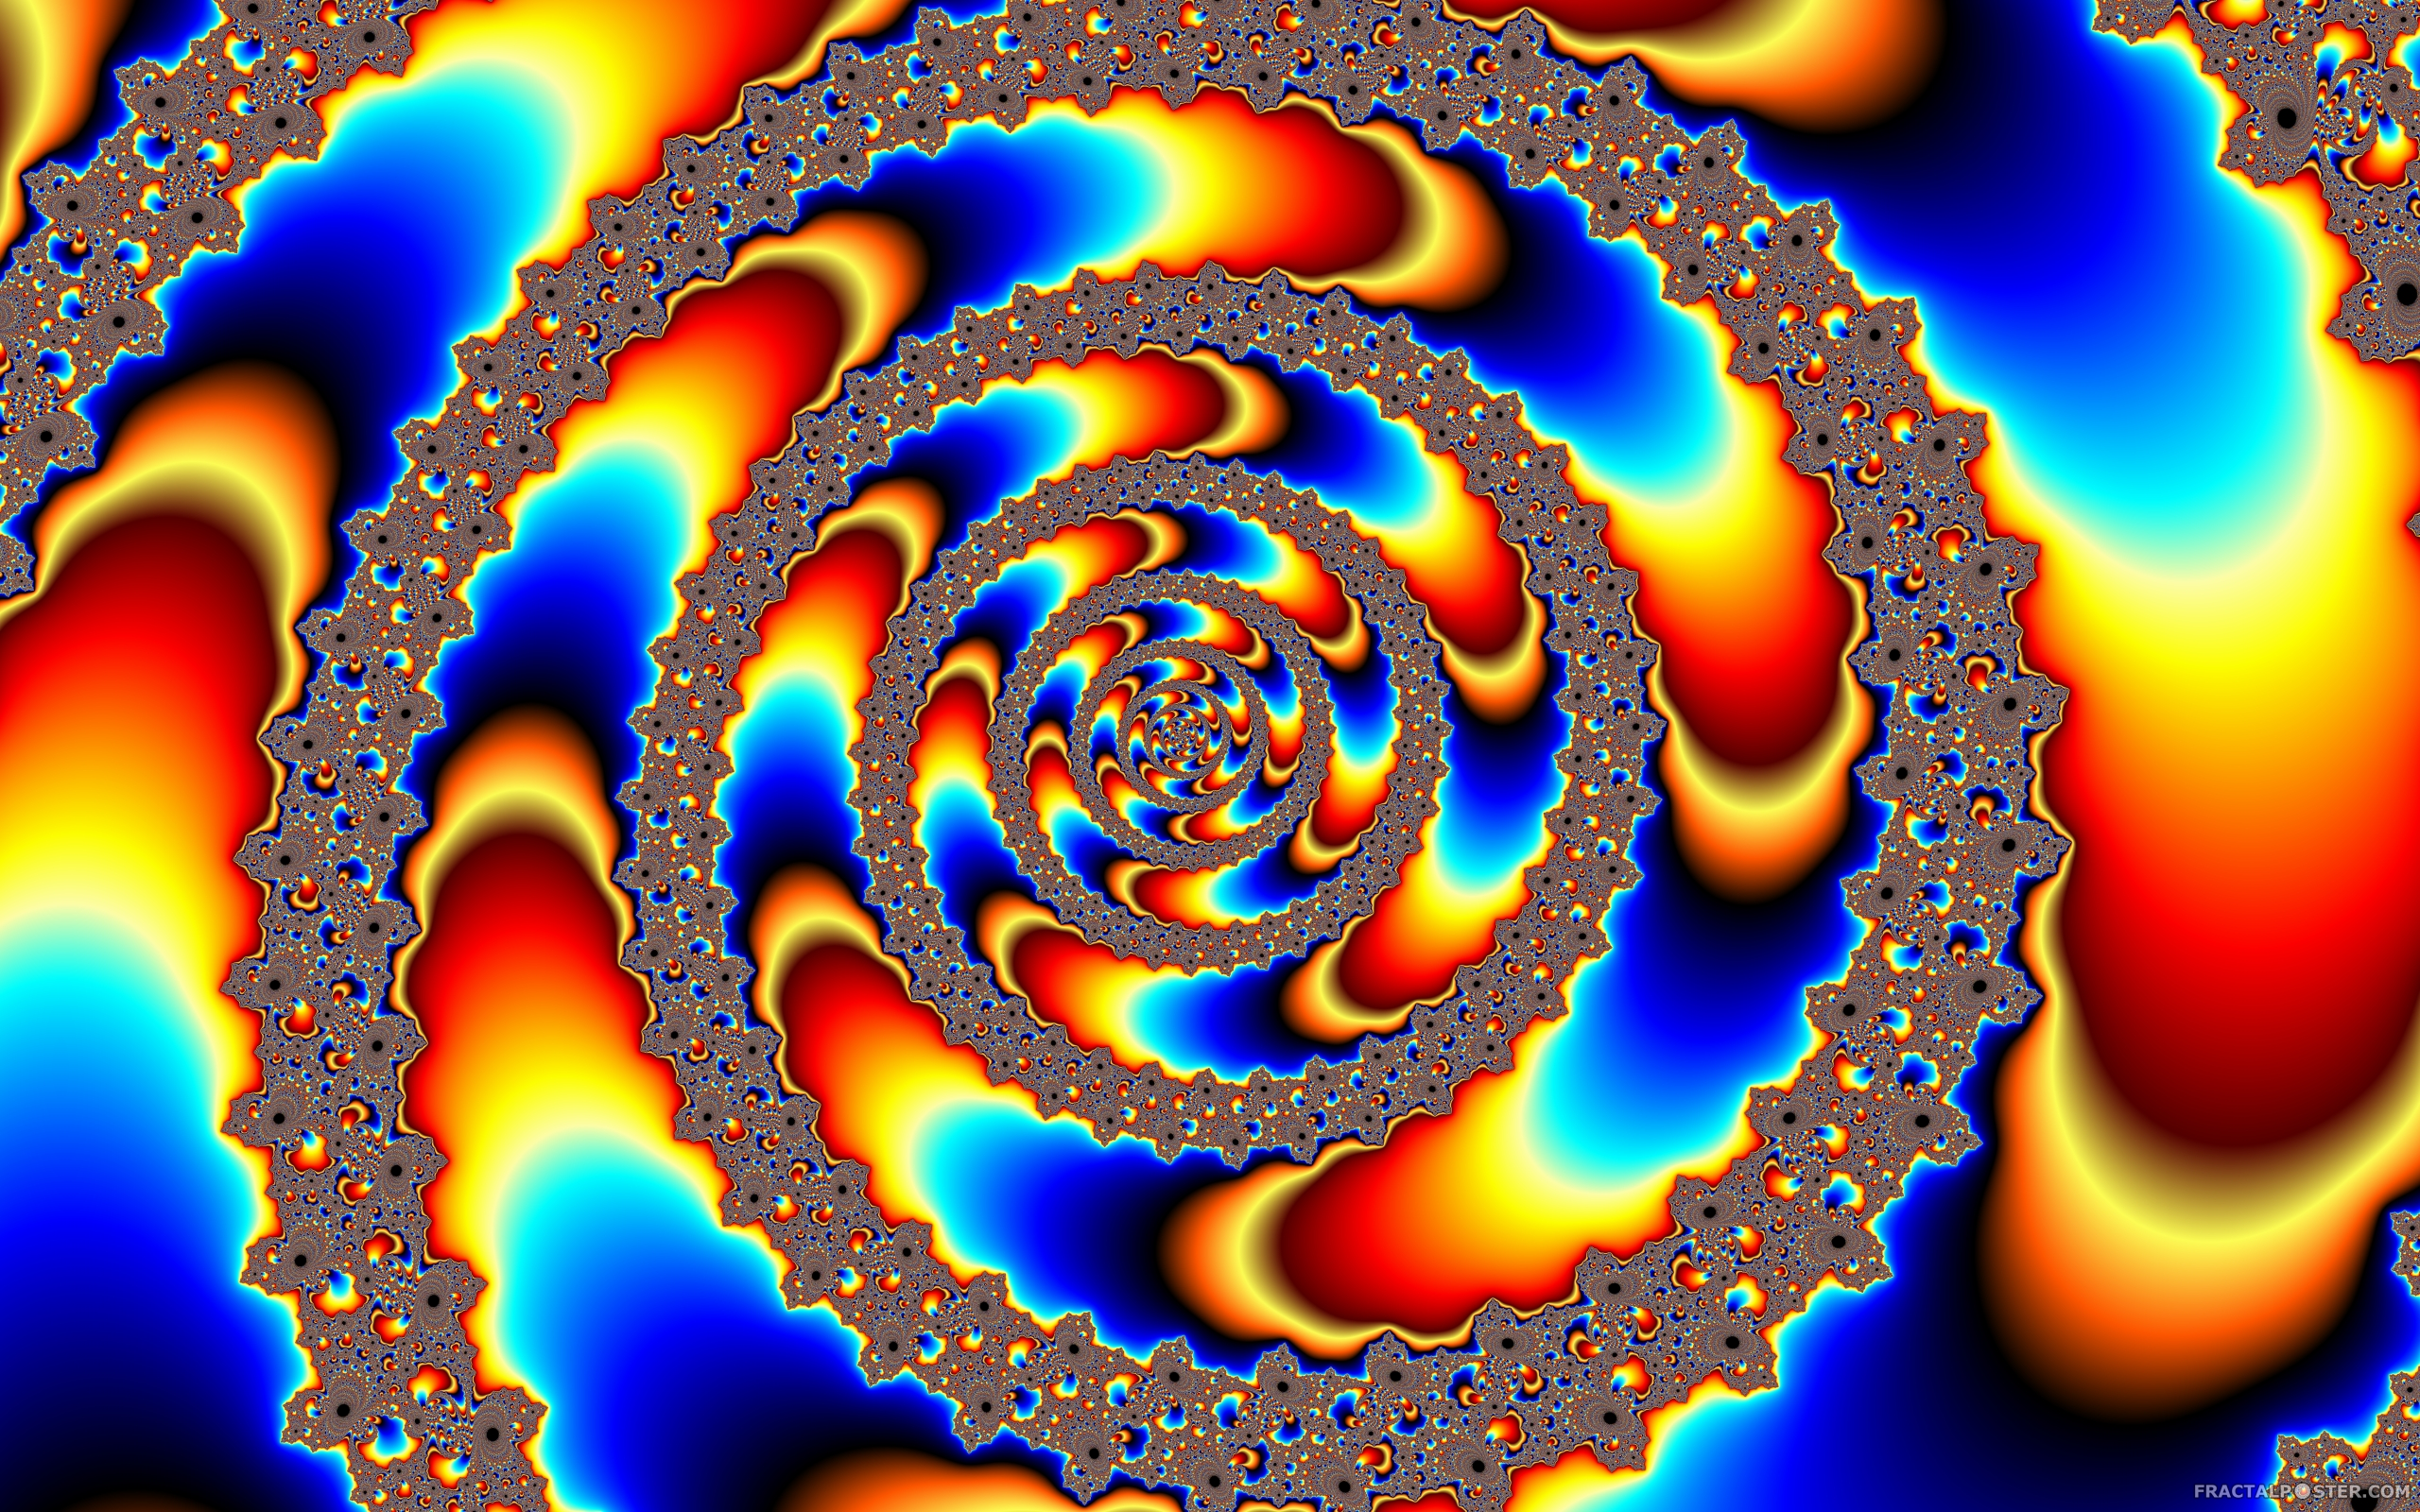 Psychedelic Wallpaper Hd Quot Hippie Quot Fractal Image By Dobbysgal Hd Wallpapers